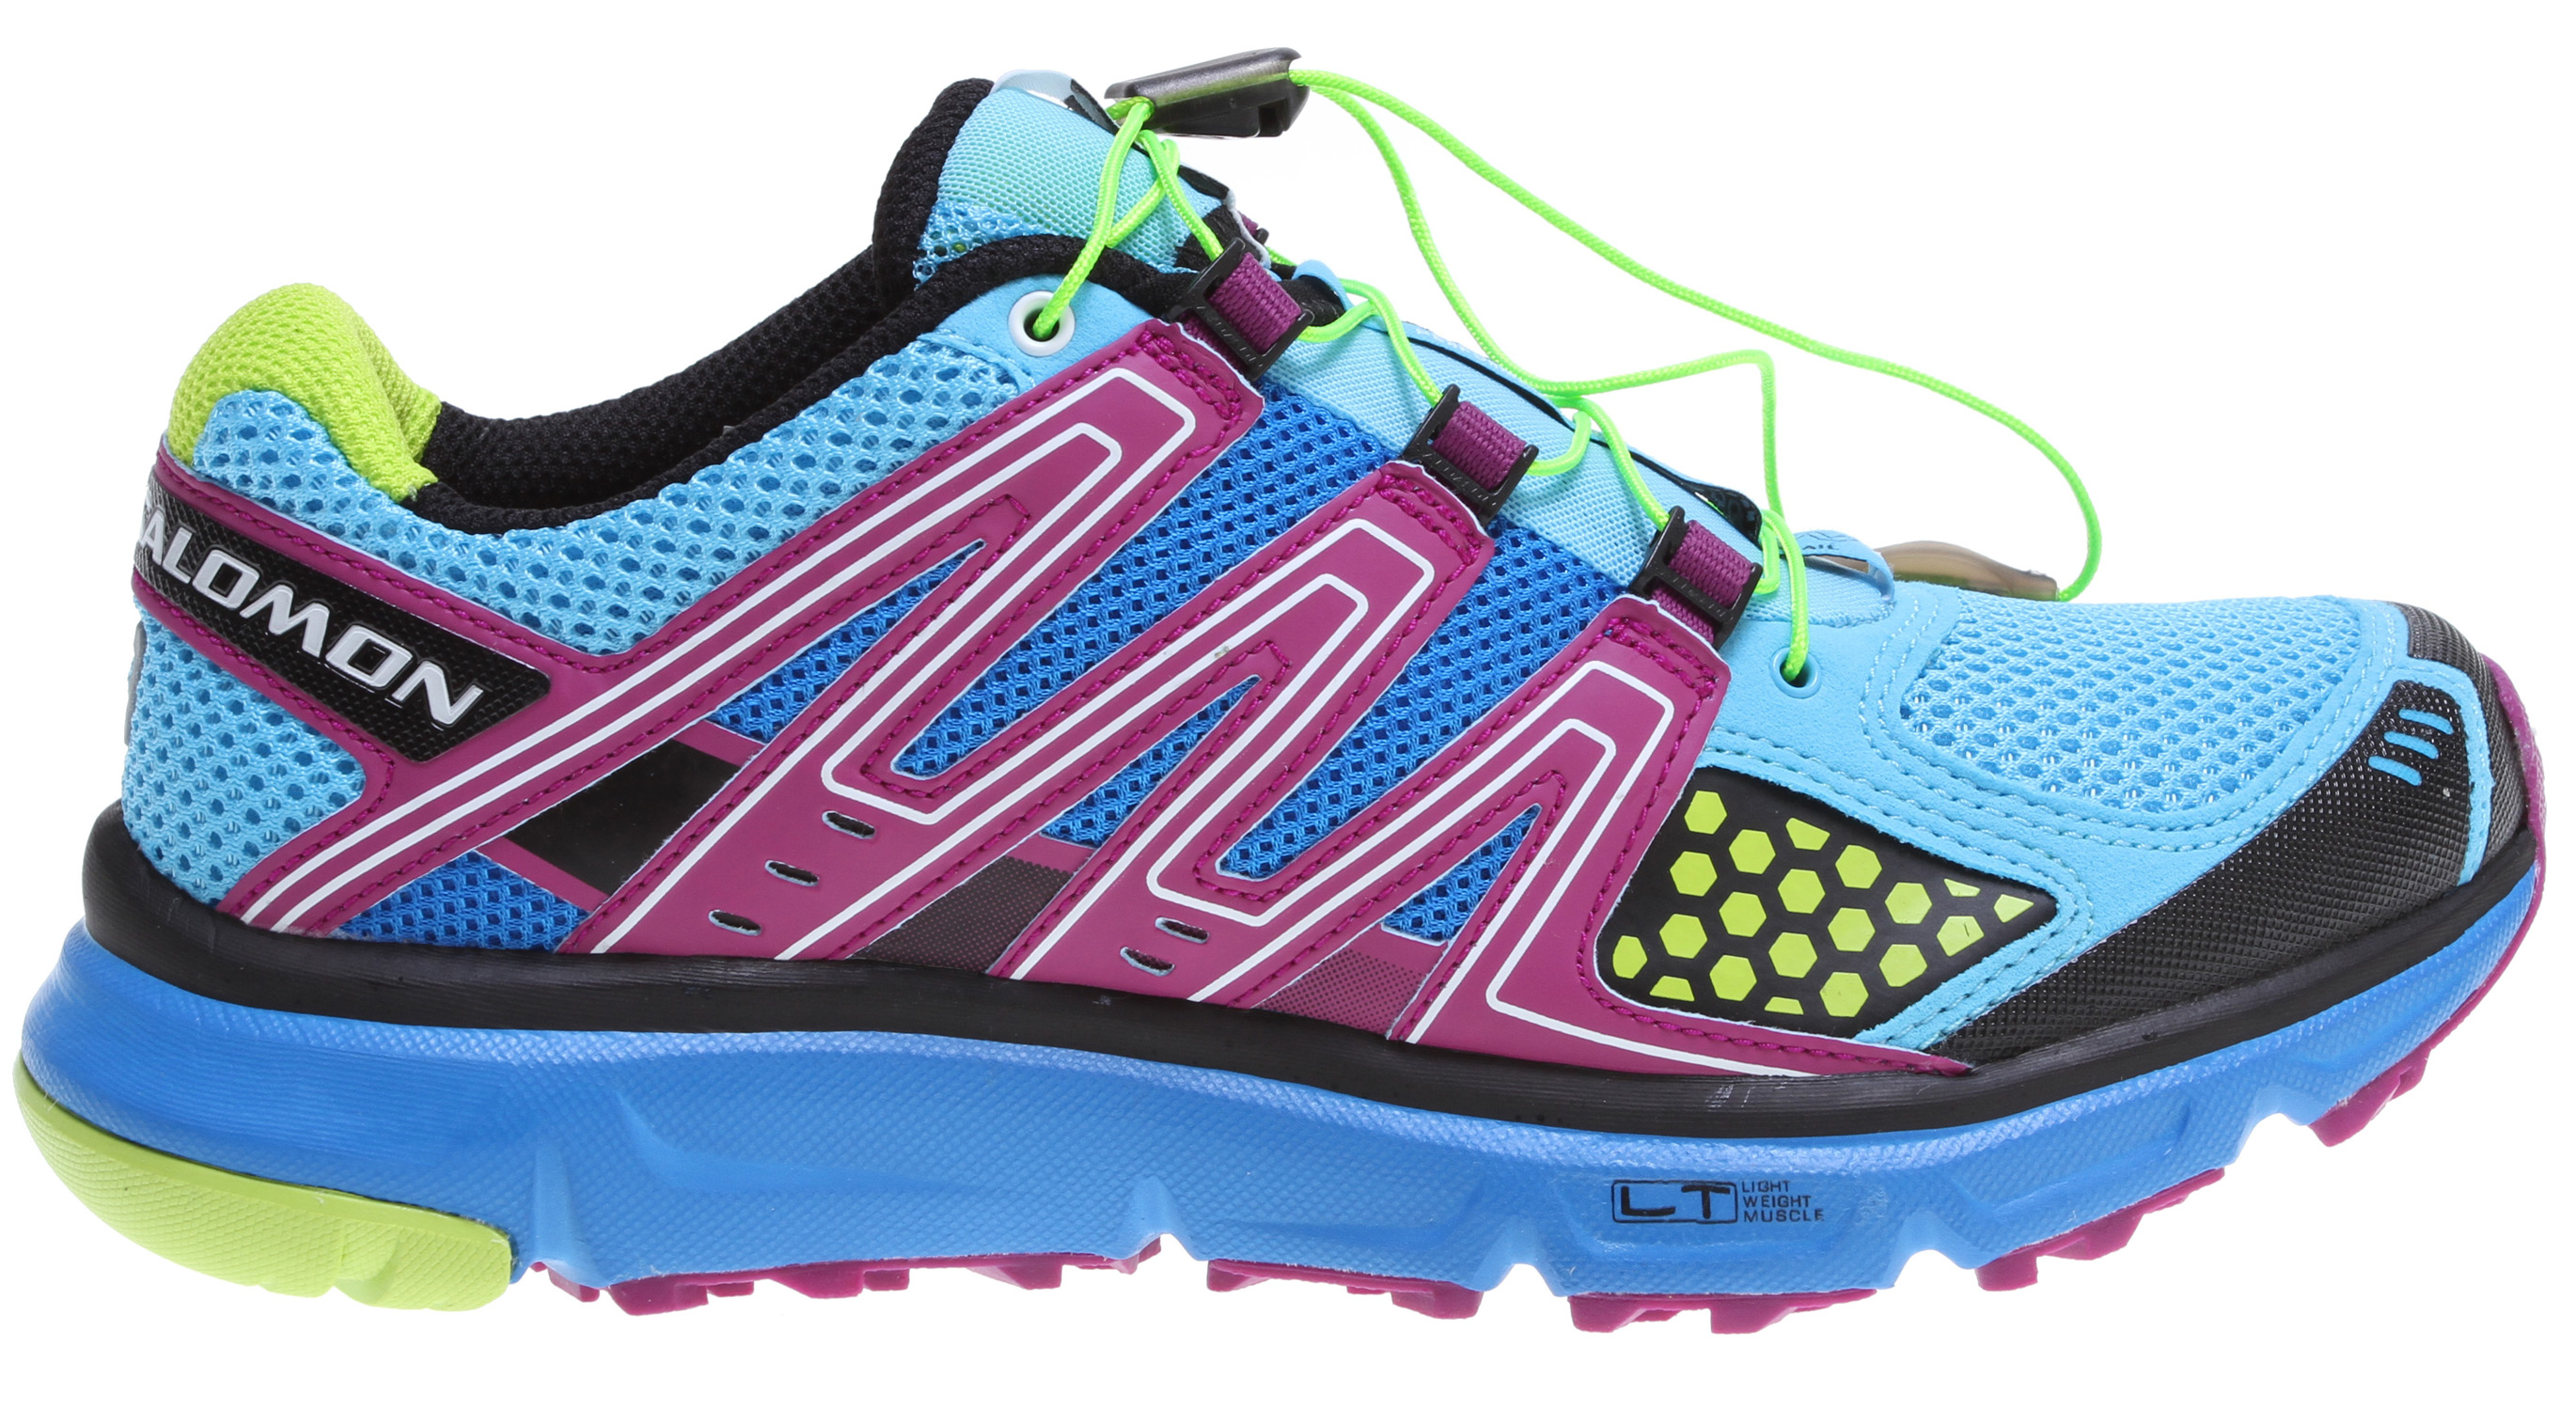 Camp and Hike If you are trail running in road shoes, this should be your next shoe. Completely designed for women.Key Features of the Salomon XR Mission Hiking Shoes: Weight: 268G / 9.5 oz (size 7) Women's specific design Friction free lace eyelet Lace pocket Protective TPU toe cap Sensiflex Quicklace Optimized fit for women Asymmetrical Sensiflex Asymmetrical SensiFit Outsole: Non marking contagrip, Contagrip LT, Contagrip A, OS Tendon Chassis: Light weight muscle Sockliner: Ortholite Midsole: Molded EVA, Dual density EVA, Compressed EVA, WSR Technology Midsole Height: 9mm / 20mm - $87.95